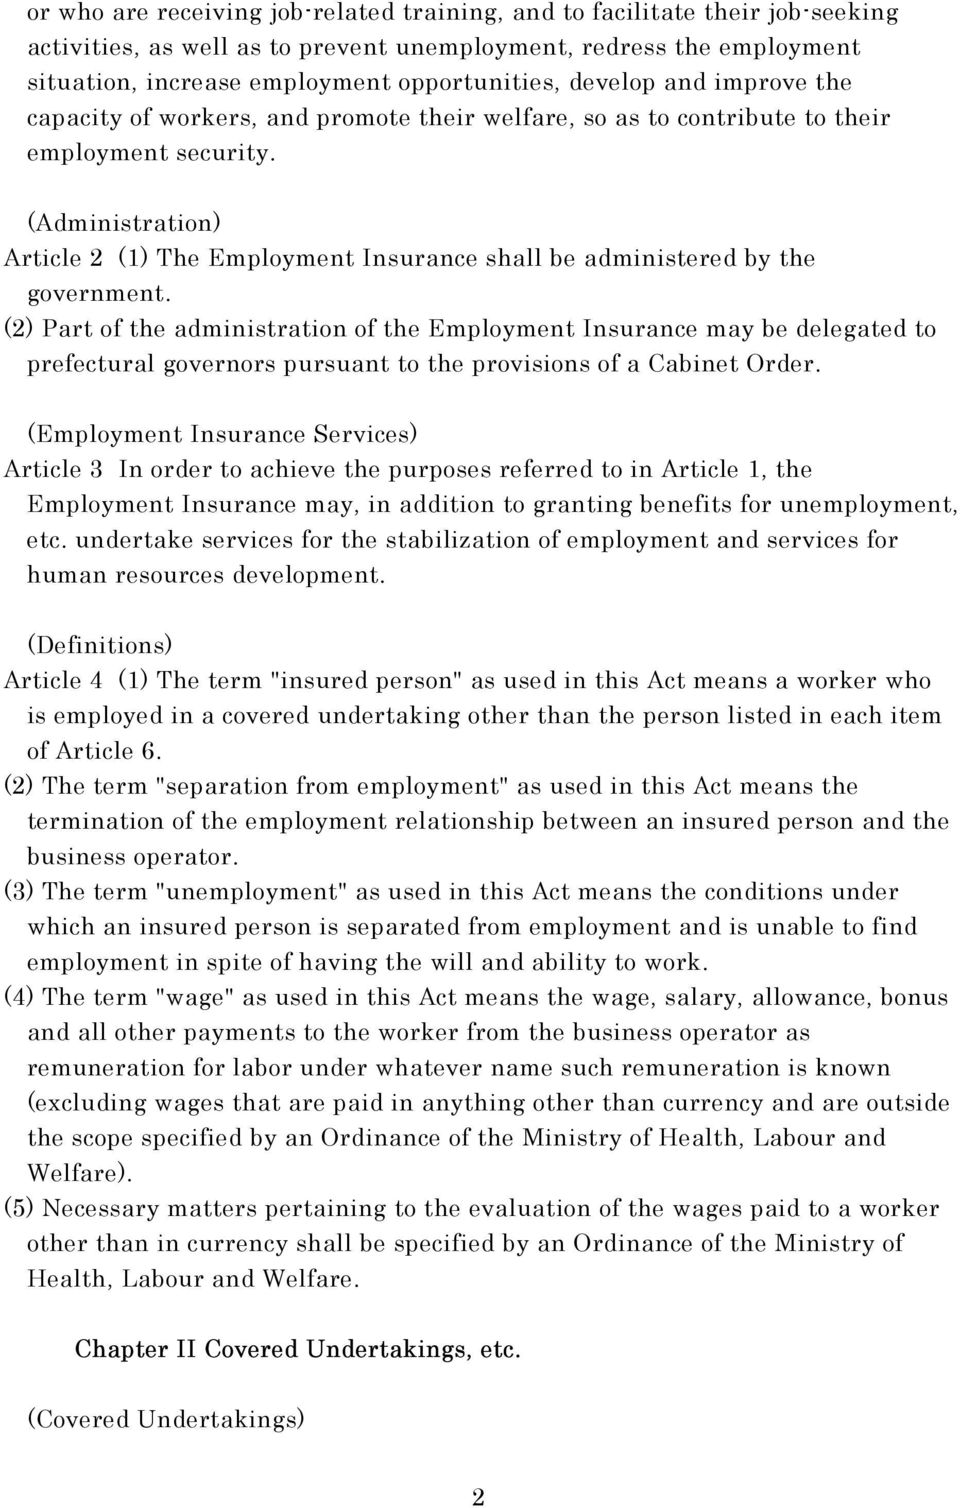 (Administration) Article 2 (1) The Employment Insurance shall be administered by the government.